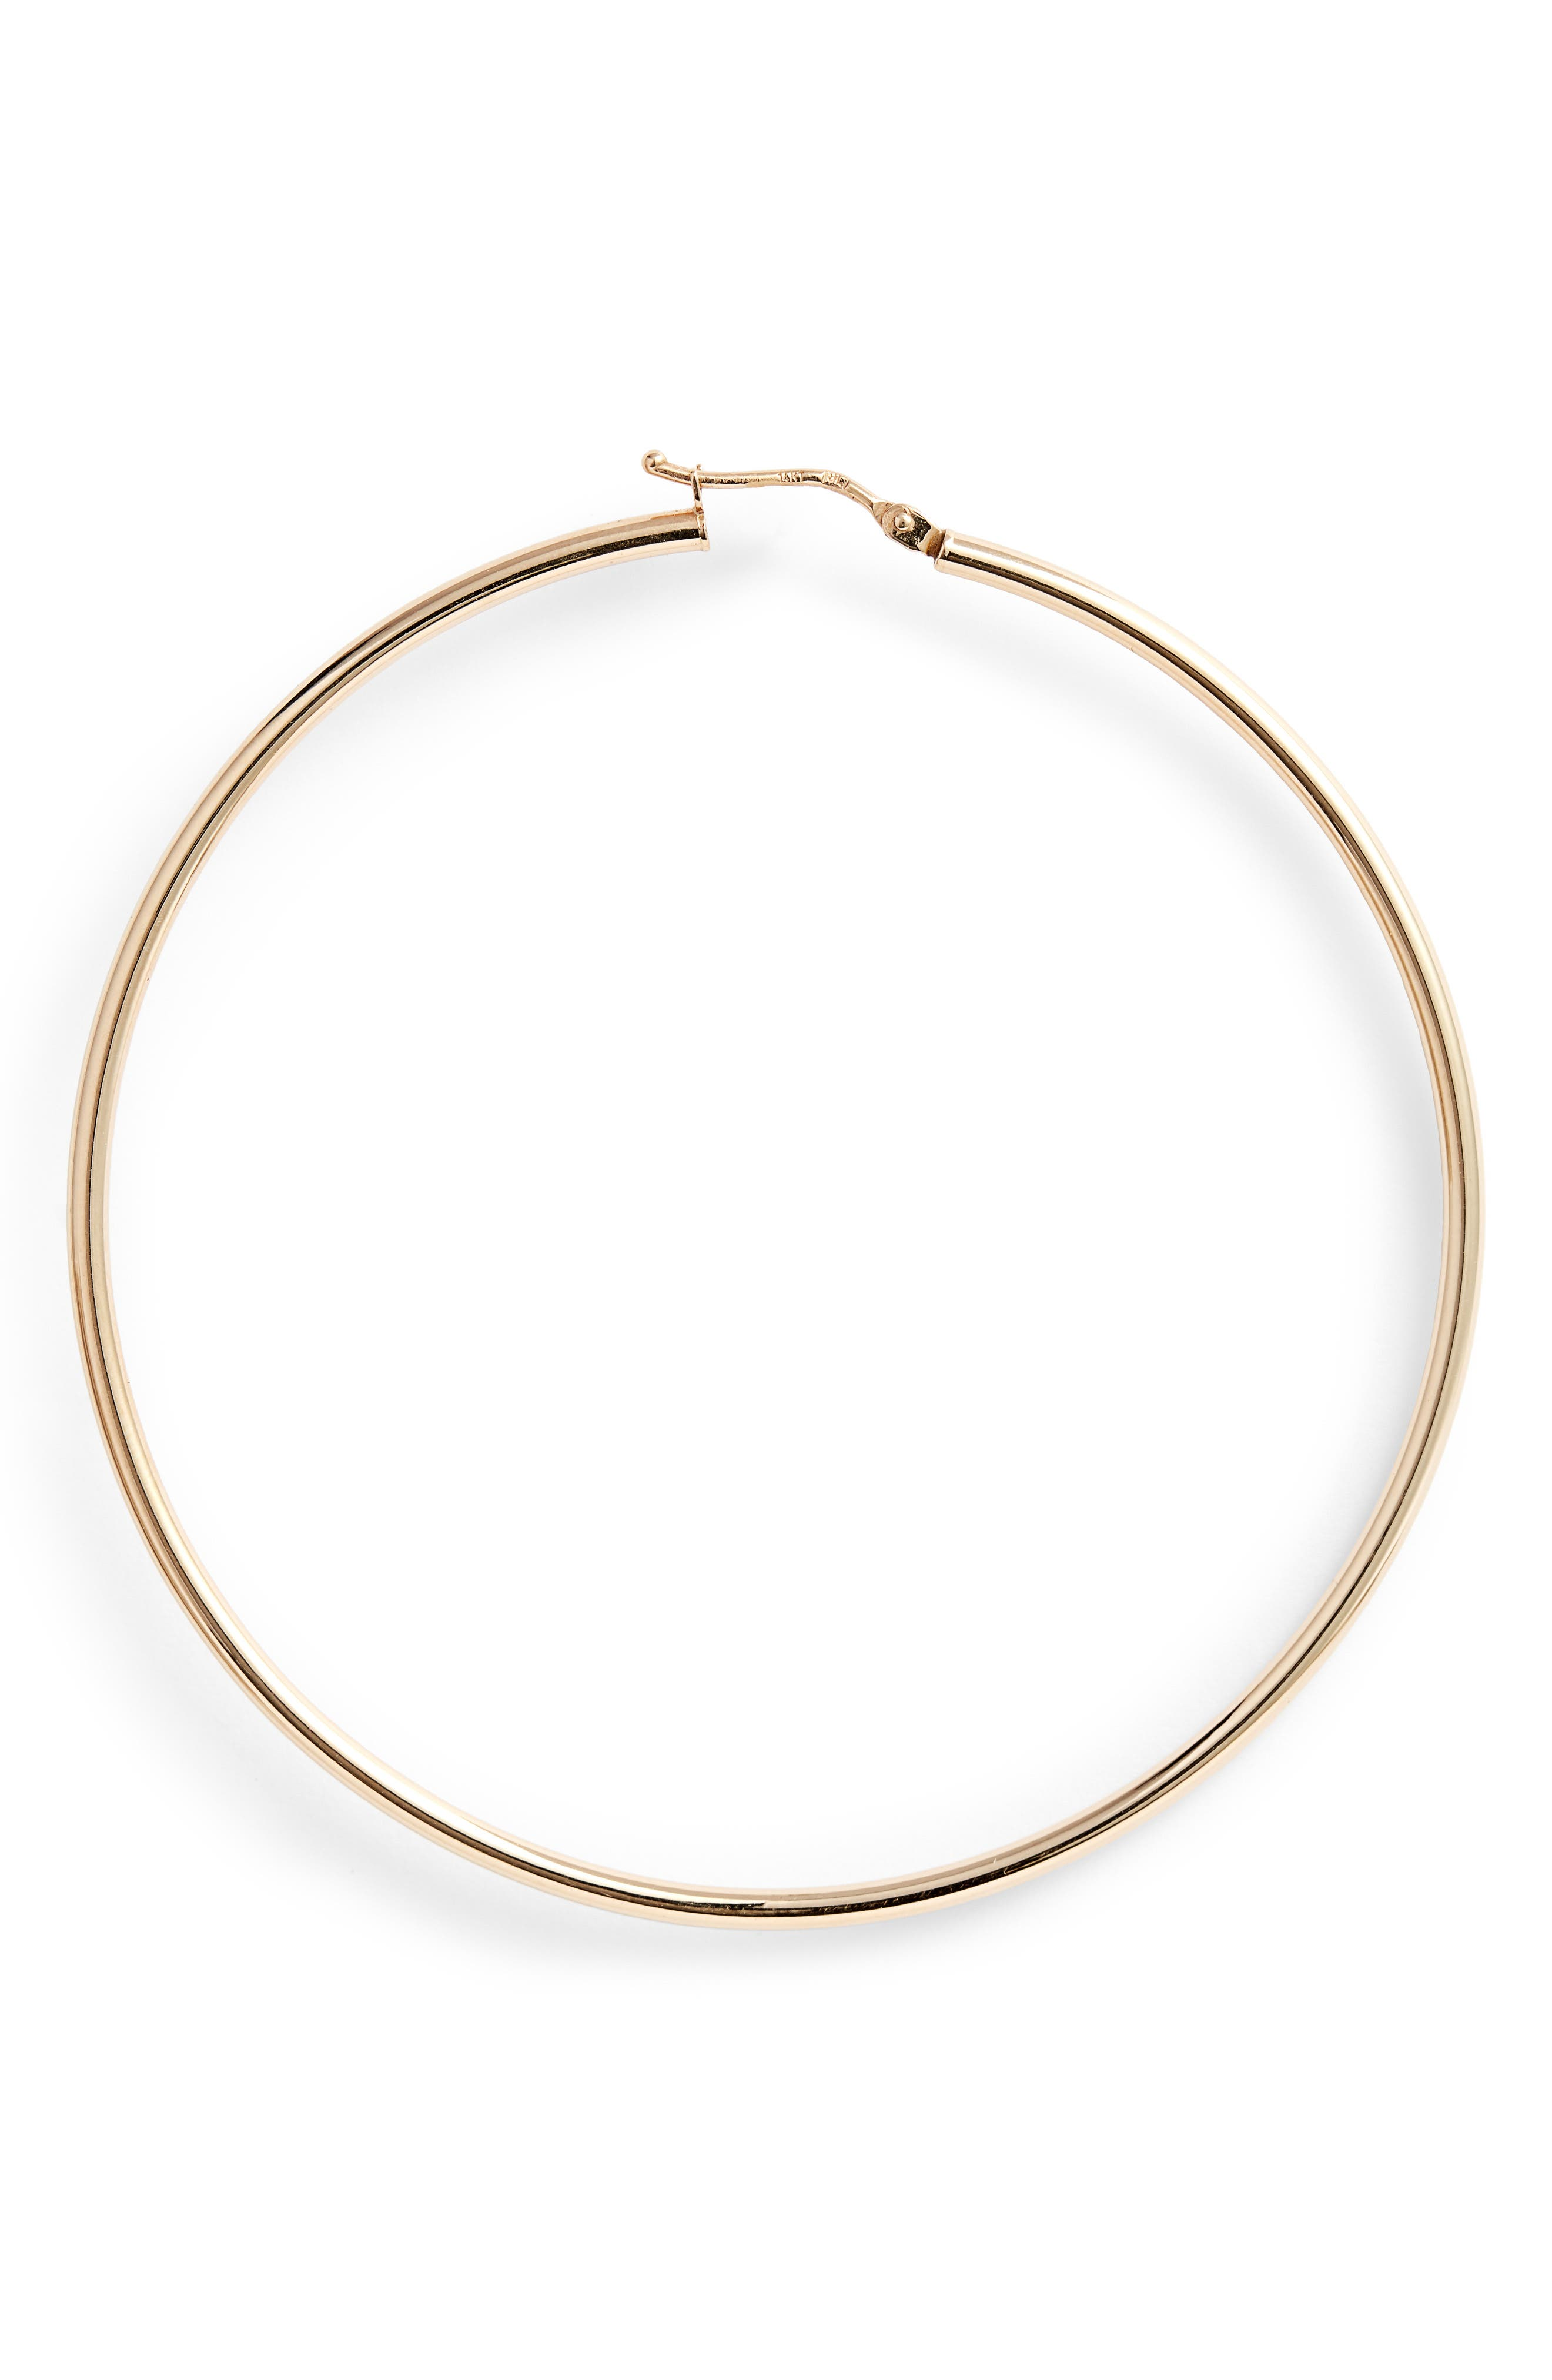 BONY LEVY,                             Extra Large Gold Hoop Earrings,                             Alternate thumbnail 4, color,                             YELLOW GOLD